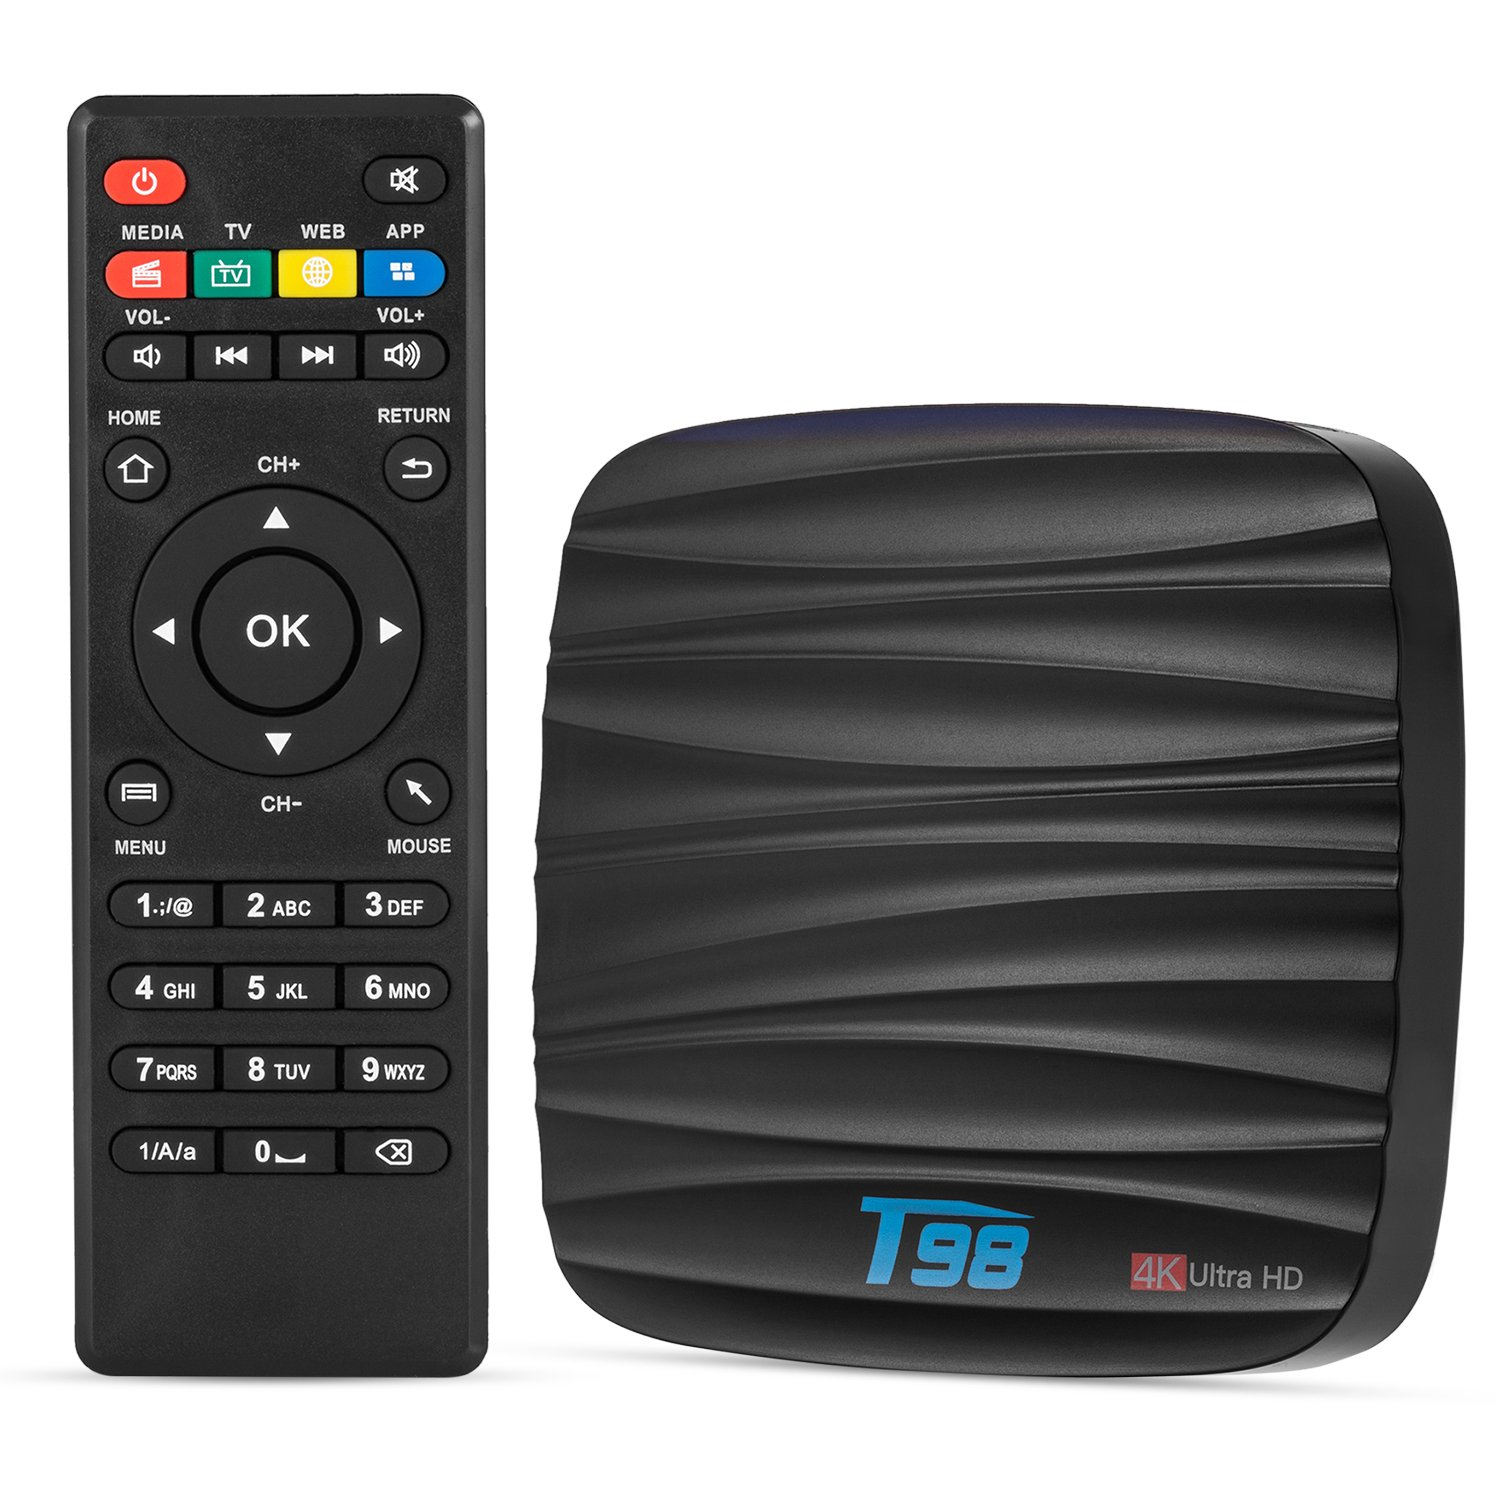 Shawn Android 7.1 T98 TV Box,RK3228 Chipset Quad Core Mali-400 4Kx2K WiFi 2GB Rom 8GB FlASH Chipset Full Loaded  20s start -up Media Player